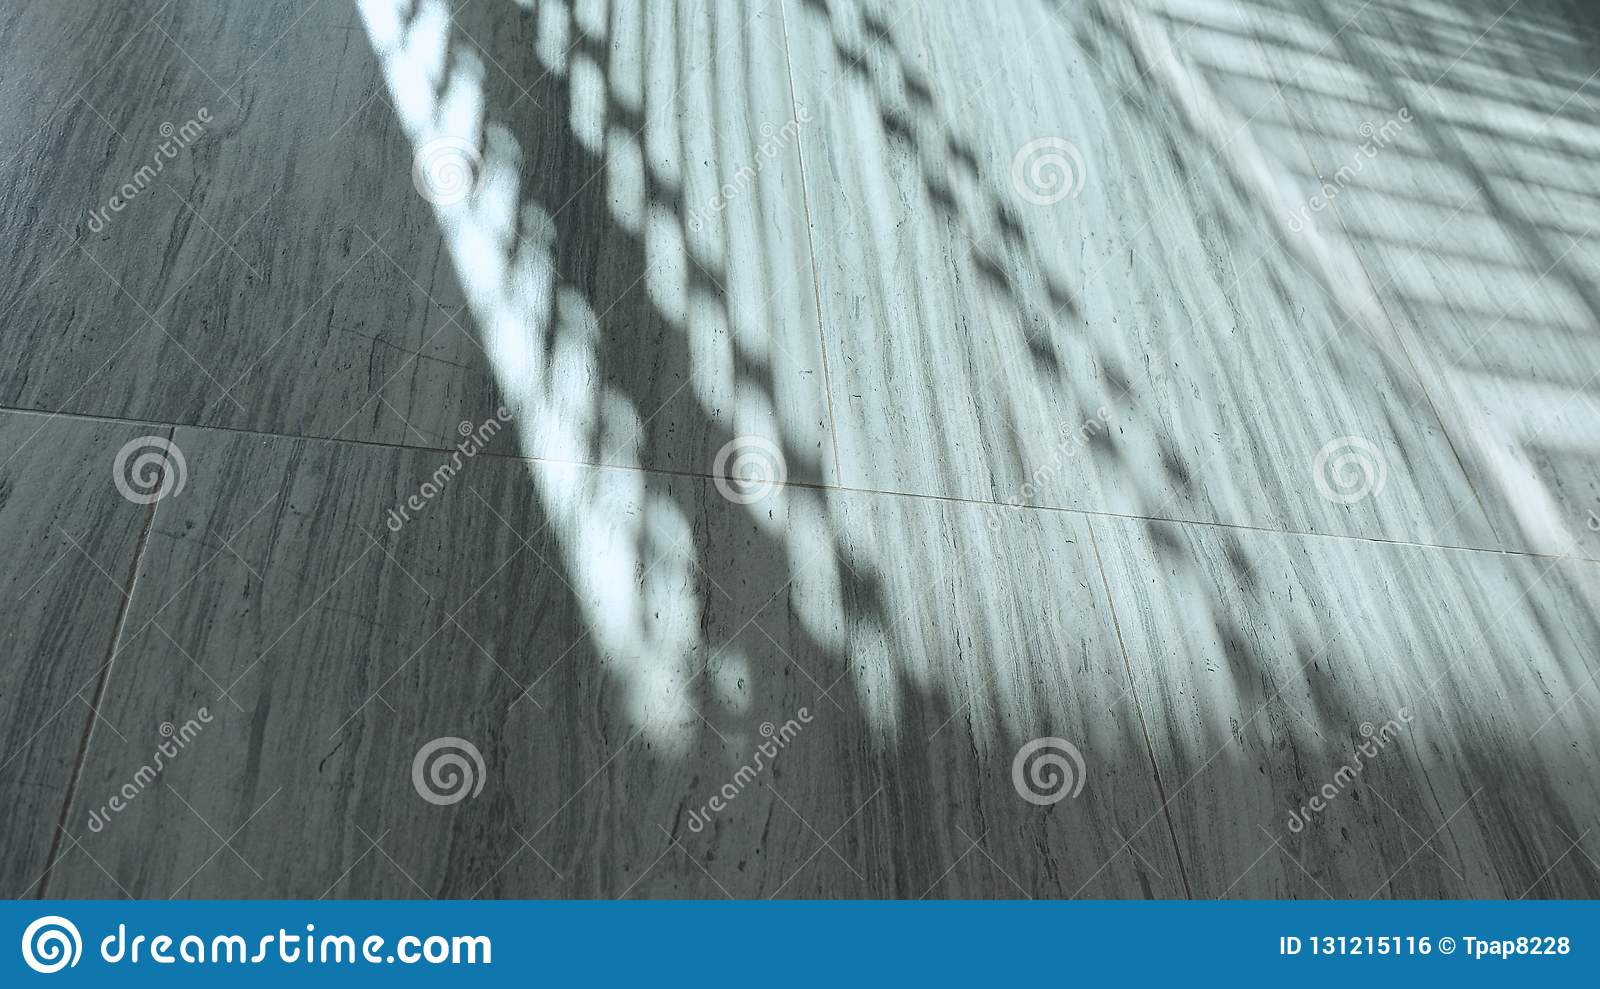 Blinds Shadow Evening Sun Light Outside Window Blinds Sunshine And Shadow On Window Blind Decorative Interior In Home Stock Photo Image Of Abstract Decoration 131215116